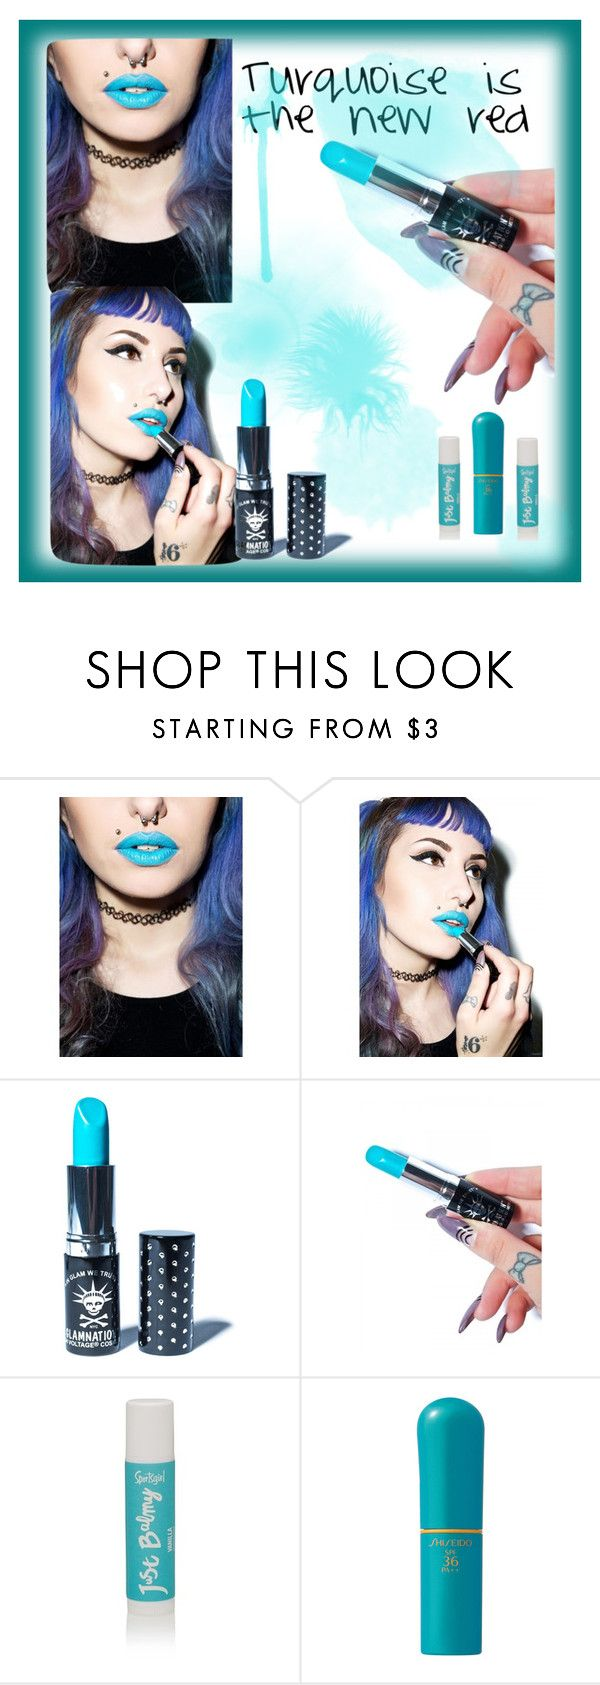 """Turquoise is the new red"" by mooninthemist ❤ liked on Polyvore featuring beauty, Manic Panic, Shiseido, LIPSTICK, turquoise and statementlip"